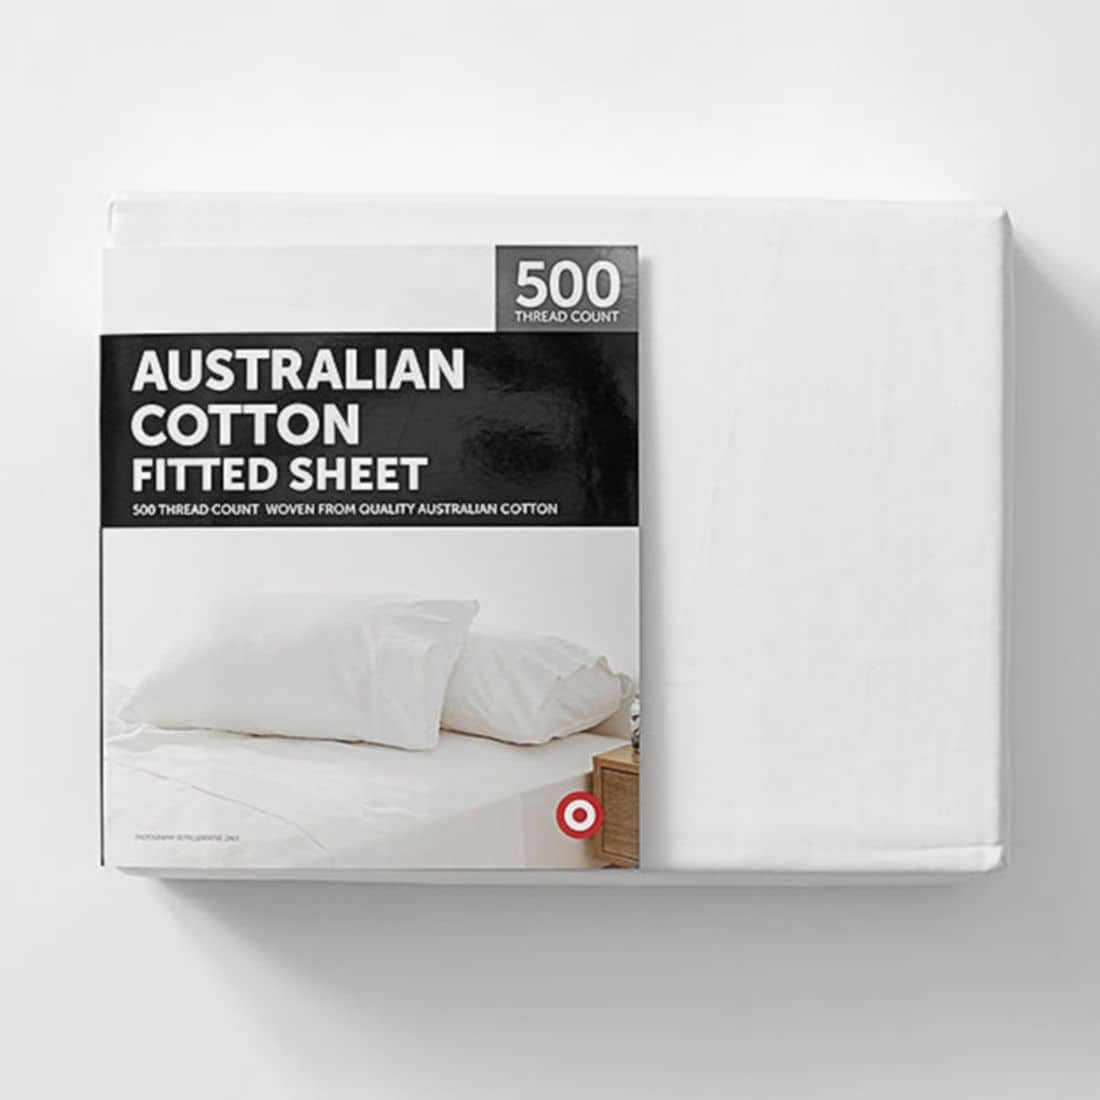 Double Bed Fitted Sheet Target 500 Thread Count Australian Cotton Fitted Sheet